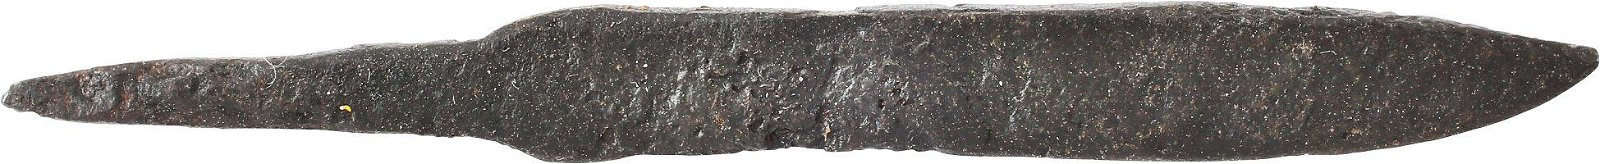 ANCIENT VIKING POCKET OR POUCH KNIFE C.850-1050 AD